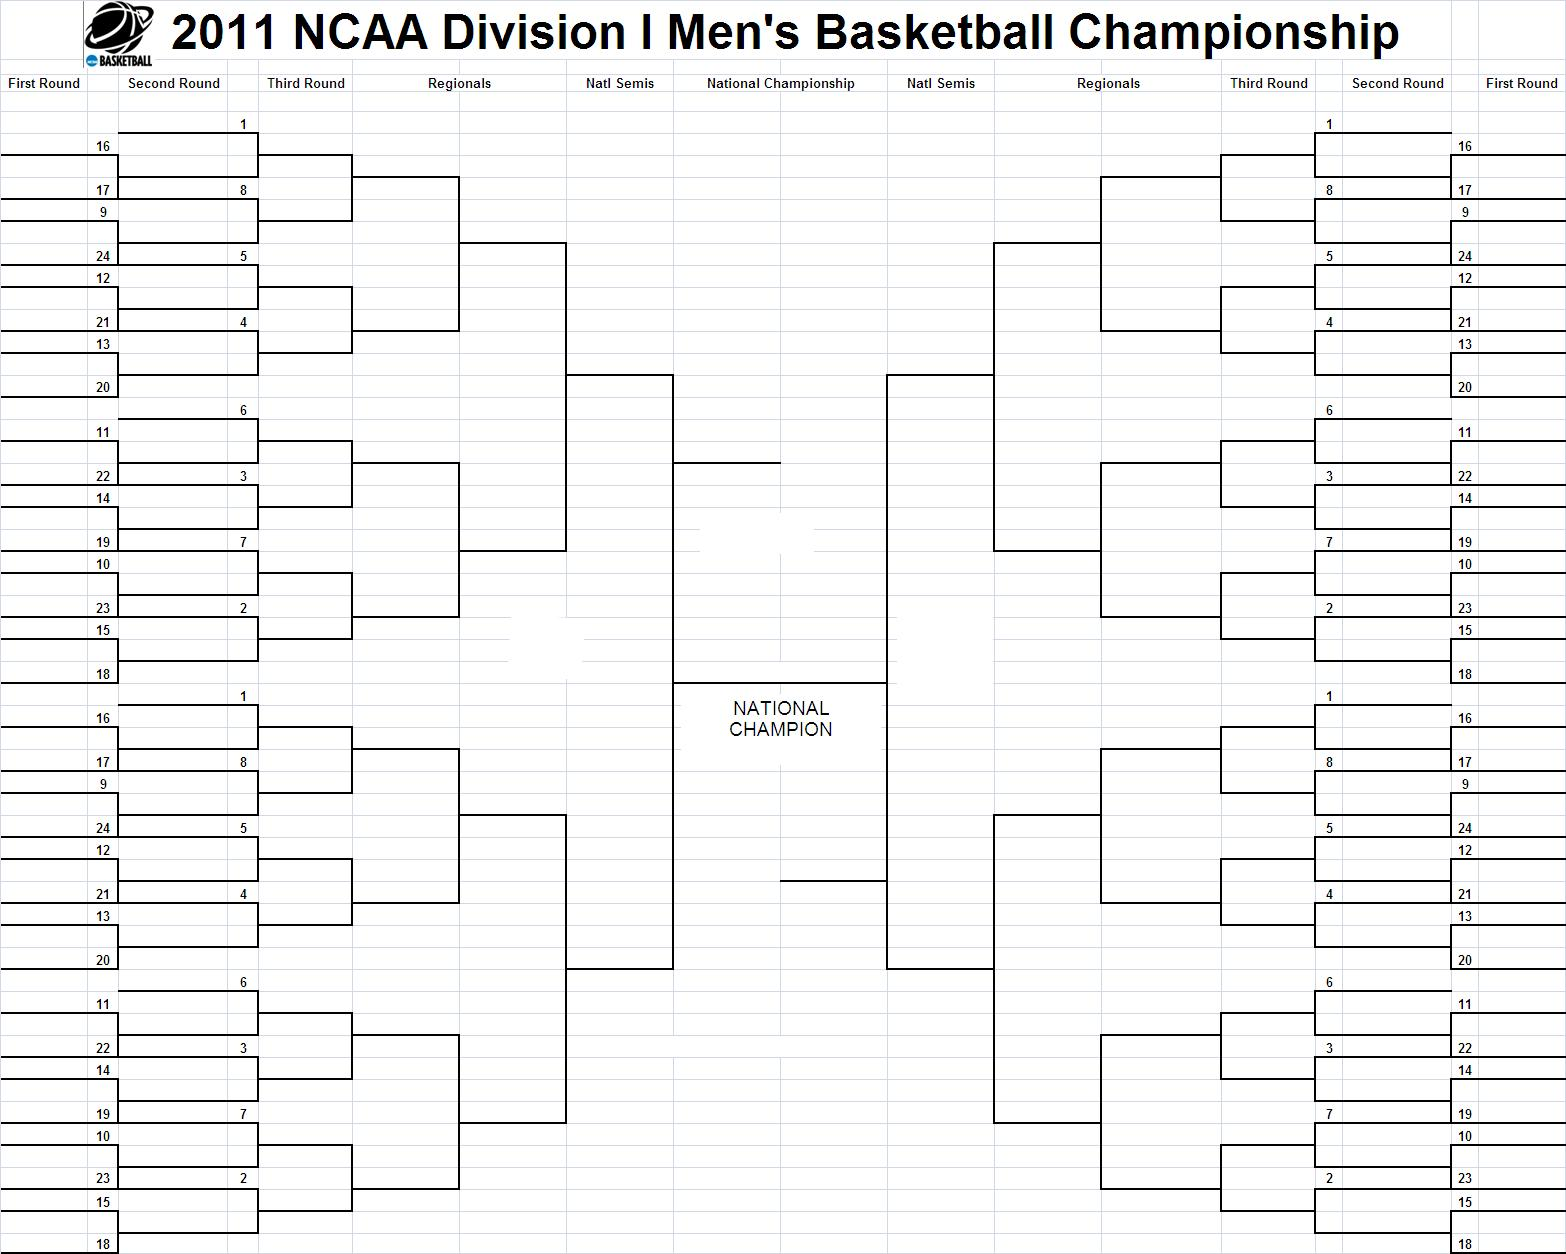 Texas A&M and UConnNCAA Women's & Men's Basketball Champions